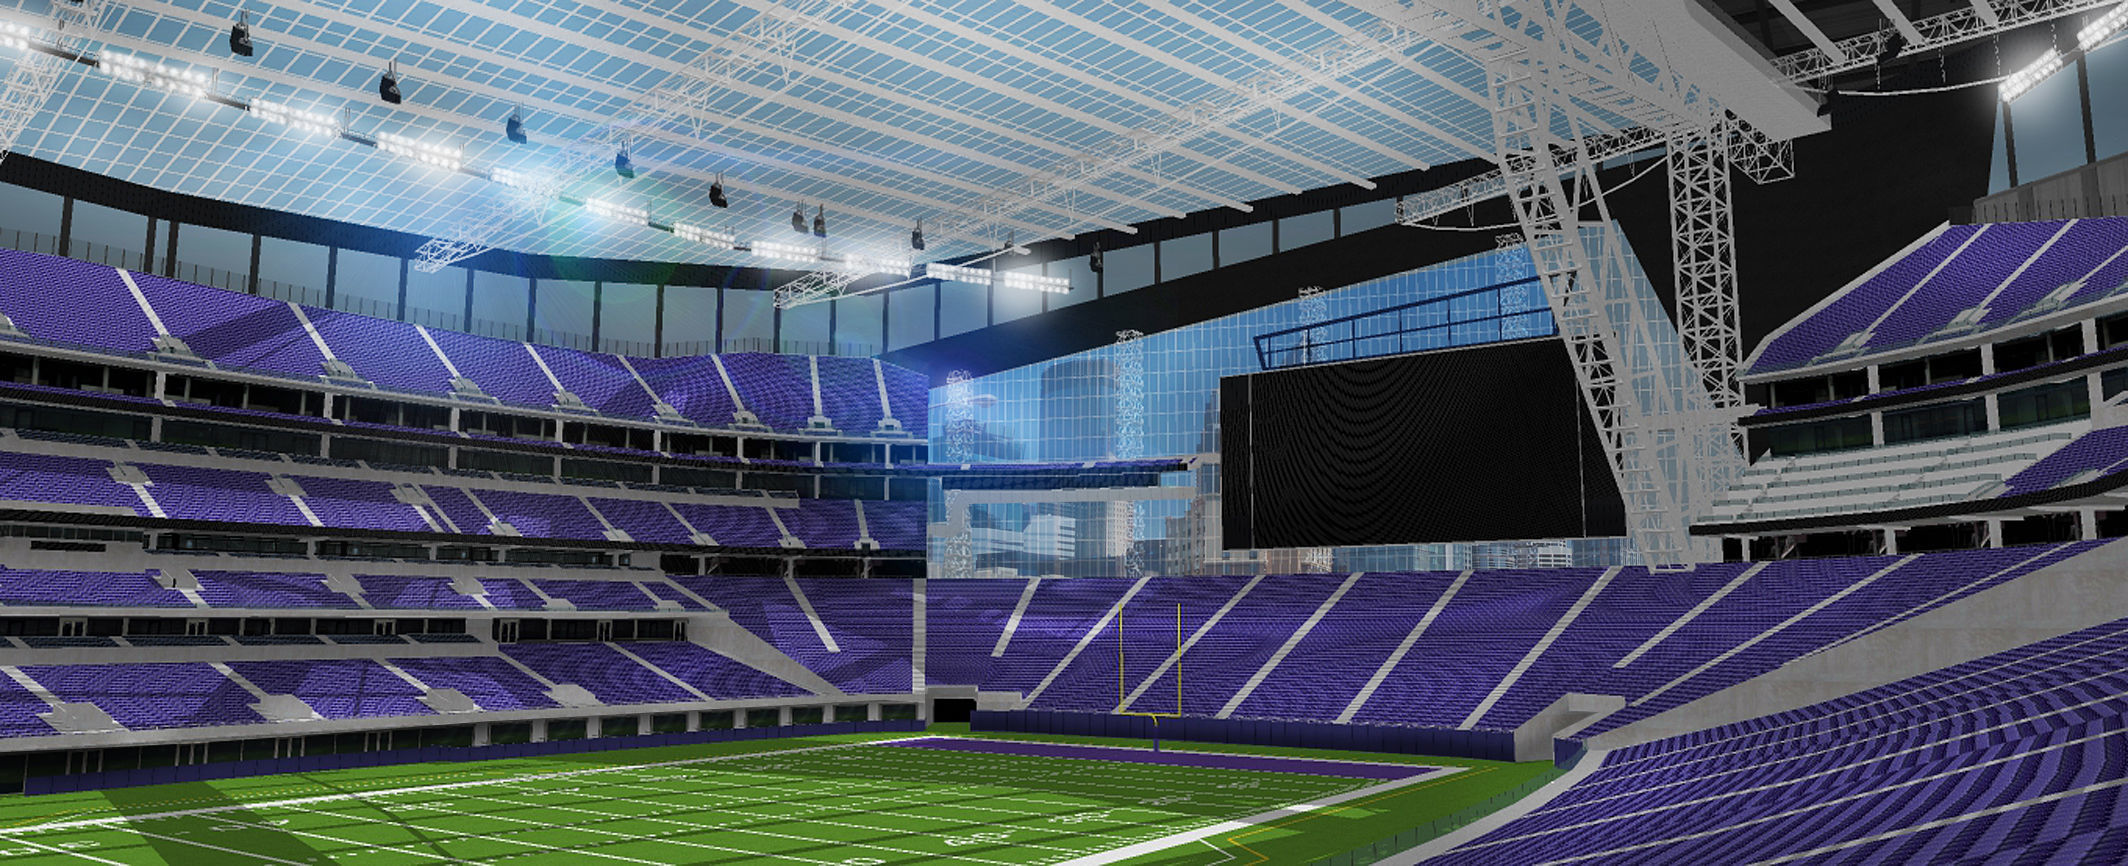 US Bank Stadium - Minnesota